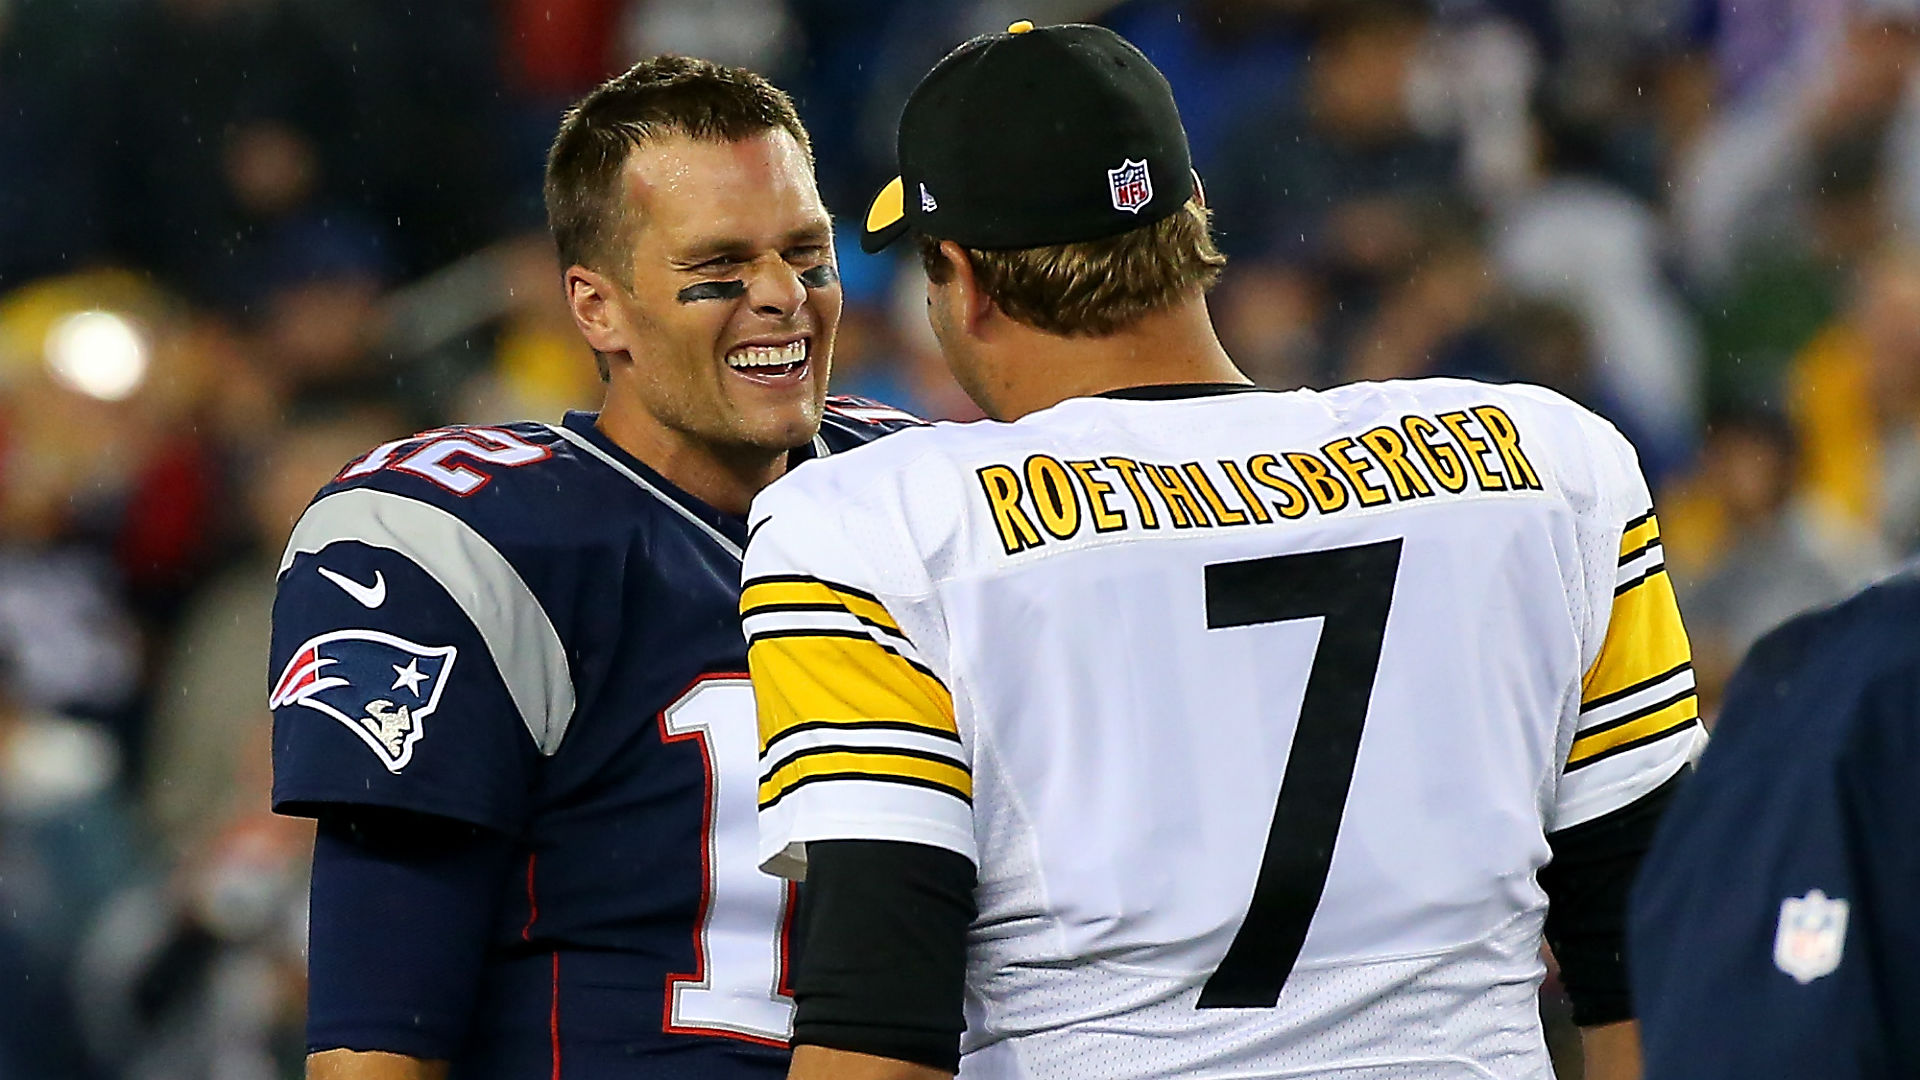 From the right angle, Patriots-Steelers rivalry has been closer than you think